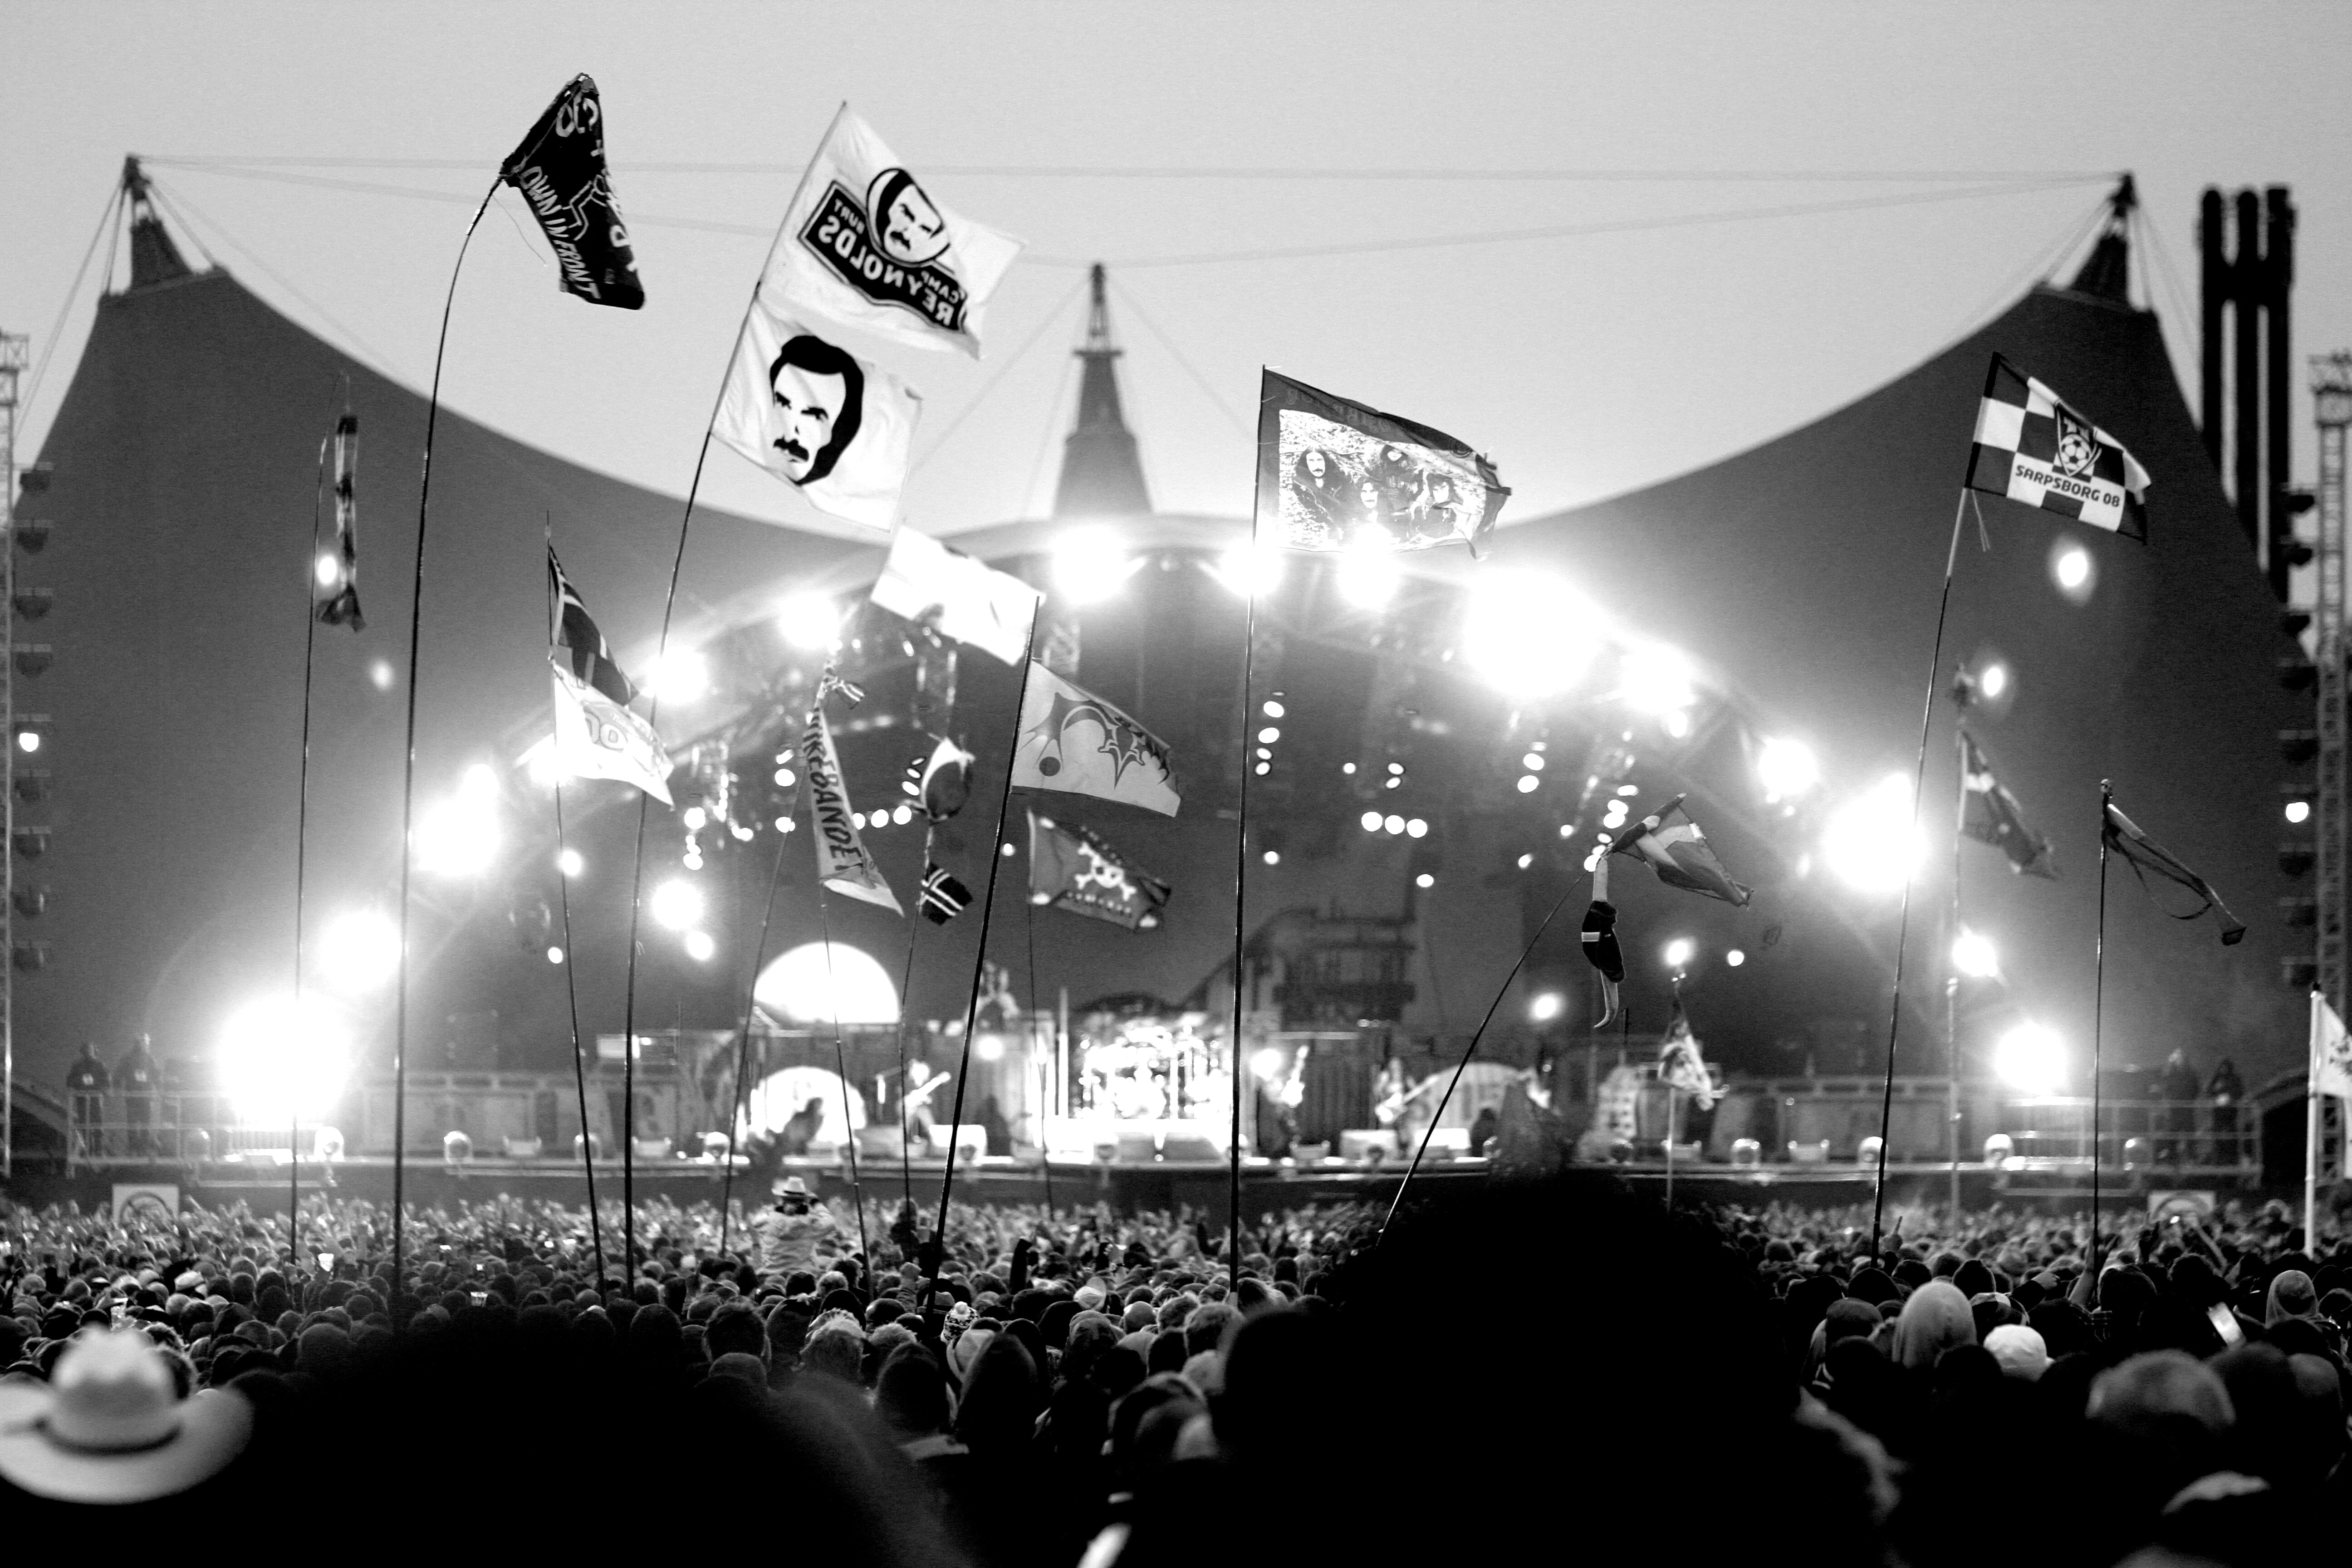 grayscale photo of people near stage